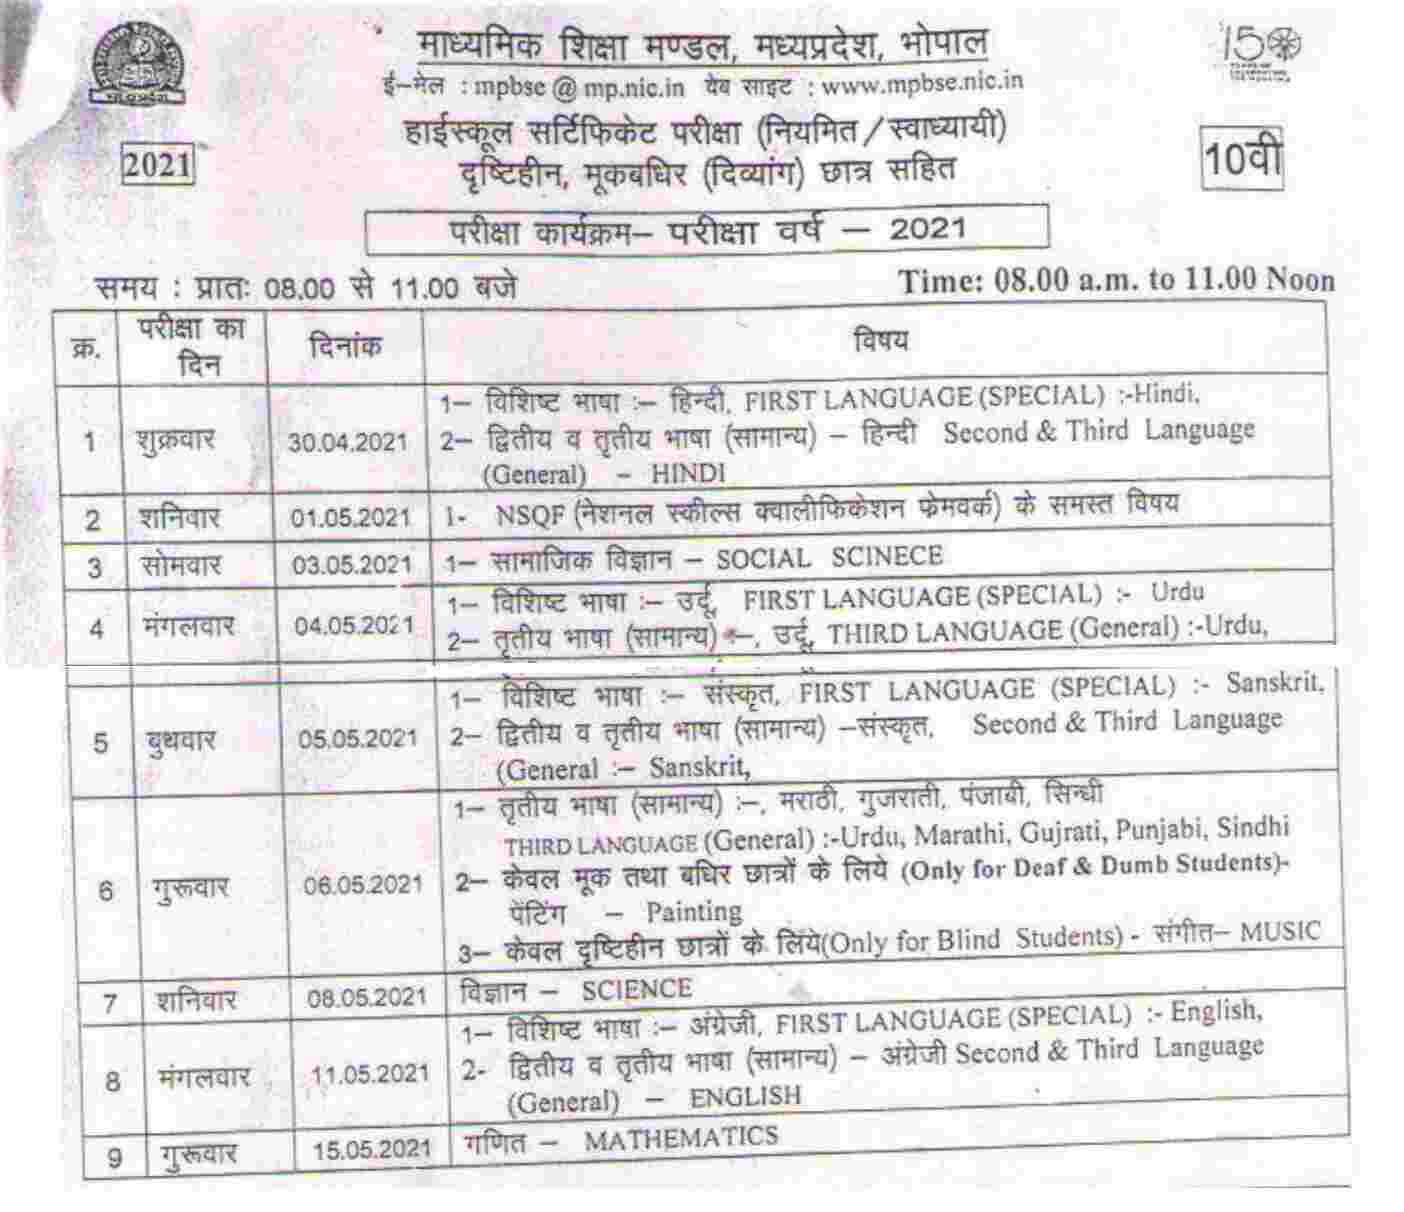 MP Board 10th Time Table 2021: Download MP Board Time Table 2021 for Class 10